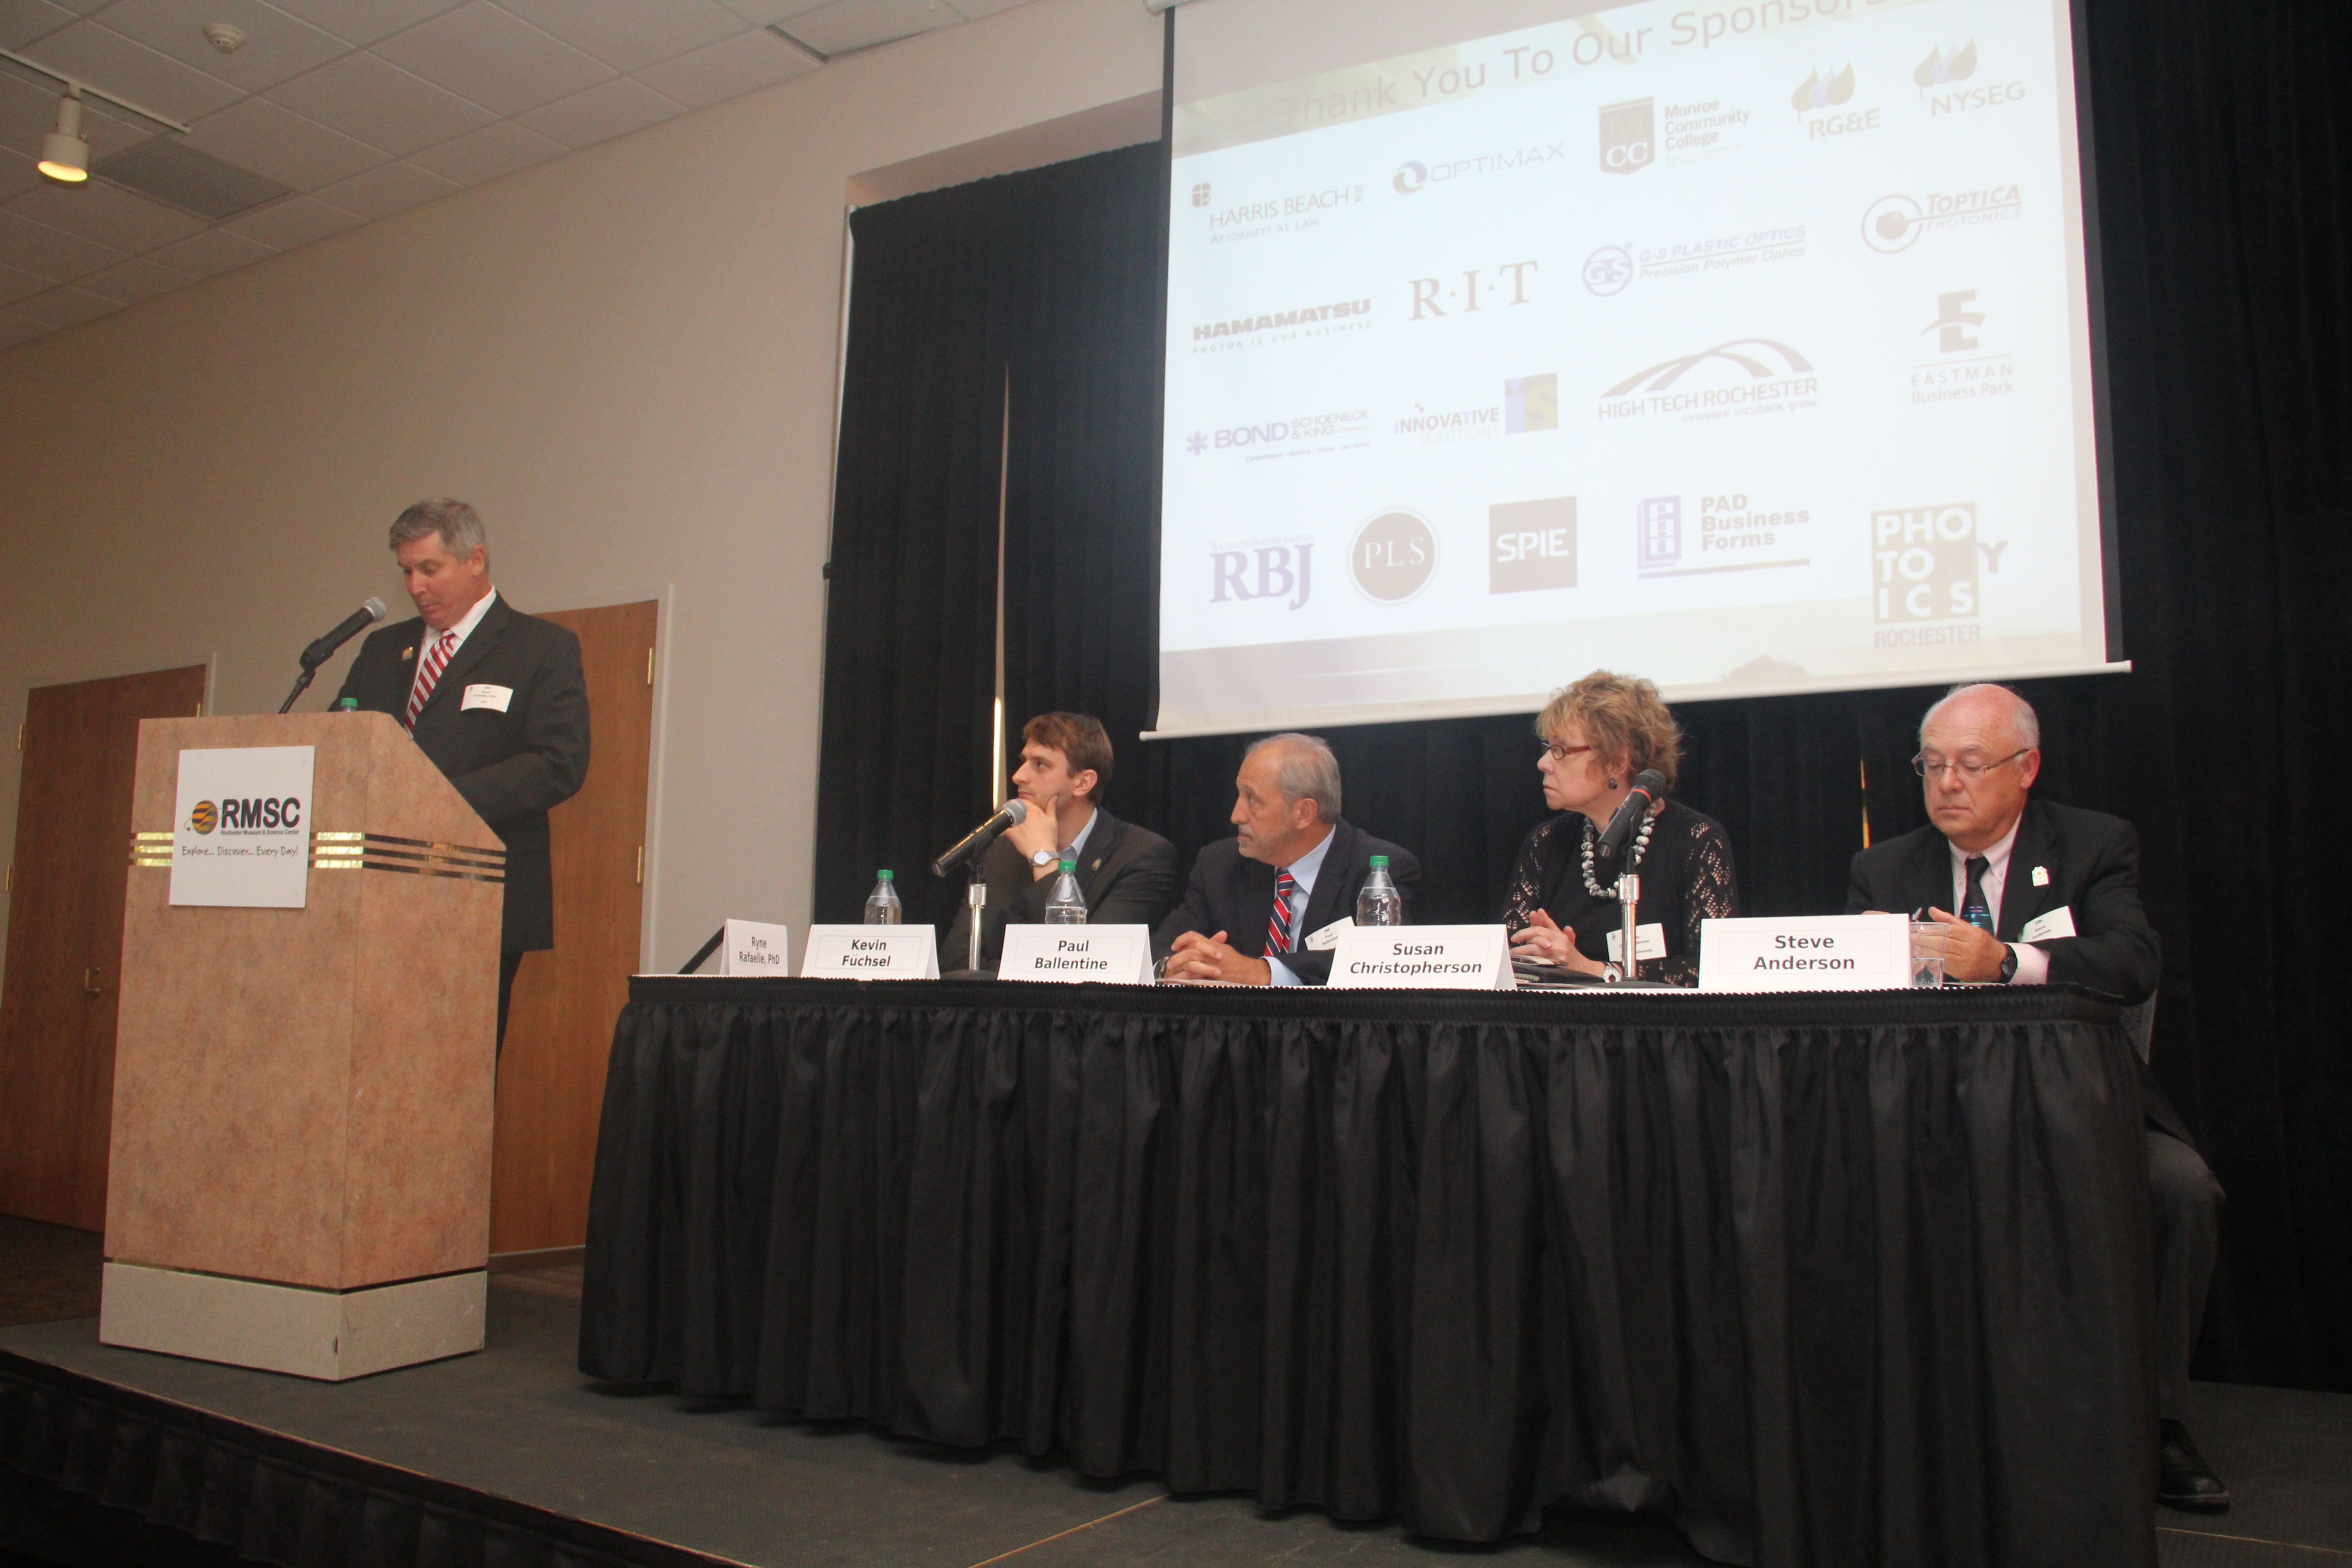 Dr. Ryne Raffaelle of RIT moderates a discussion panel which includes, L to R,